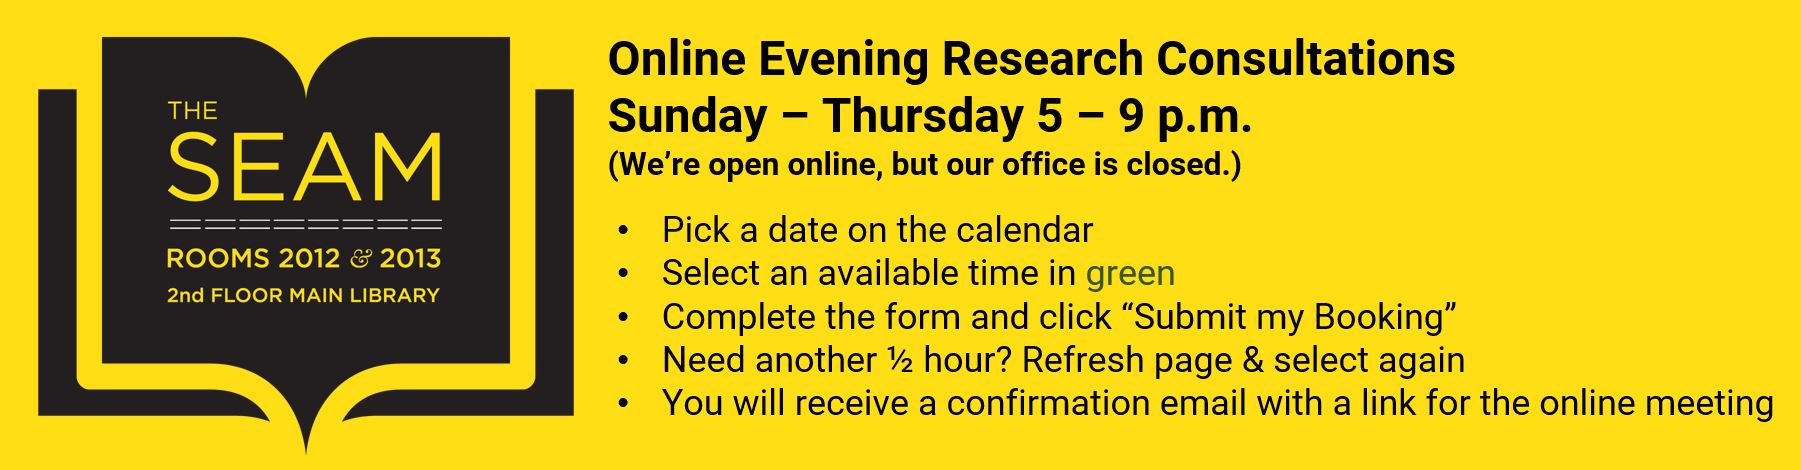 "Online Evening Research Consultations Sunday – Thursday 5 – 9 p.m. (We're open online, but our office is closed.) Pick a date on the calendar. Select an available time in green. Complete the form and click ""Submit my Booking."" Need another ½ hour? Refresh page & select again. You will receive a confirmation email with a link for the online meeting."